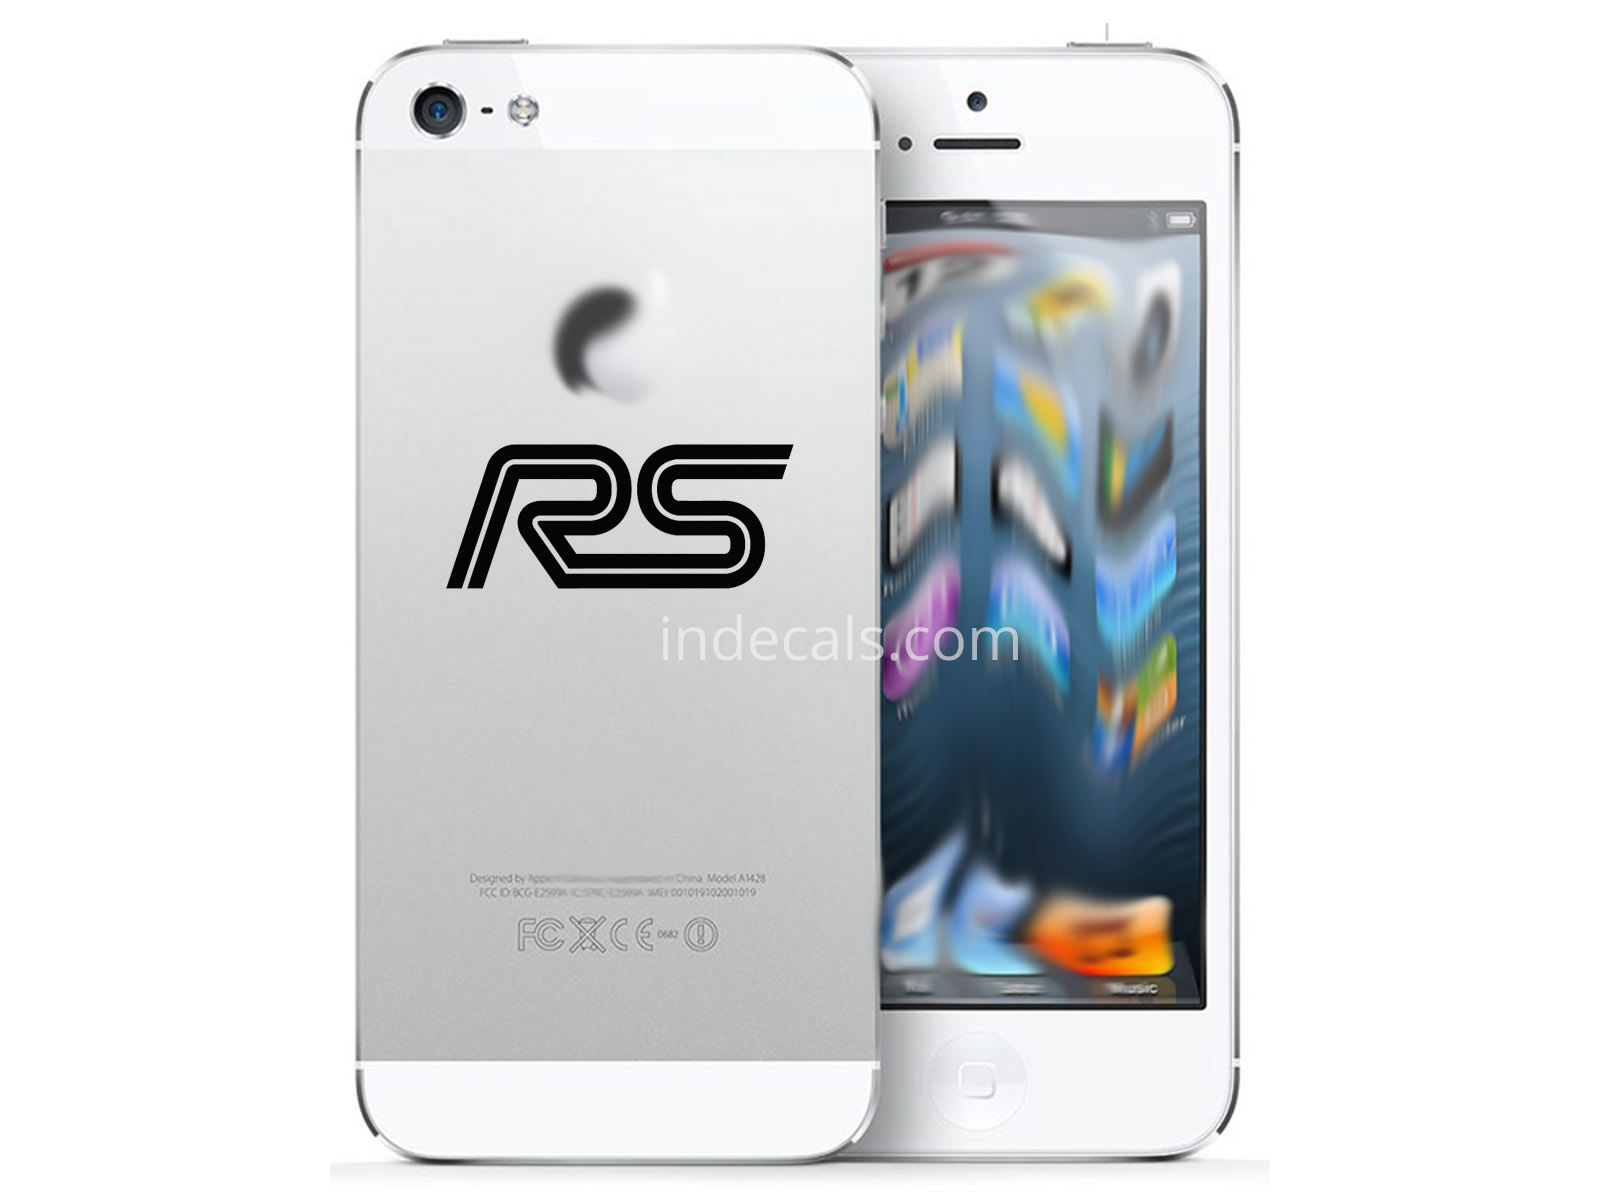 3 x Ford RS Stickers for Smartphone - Black